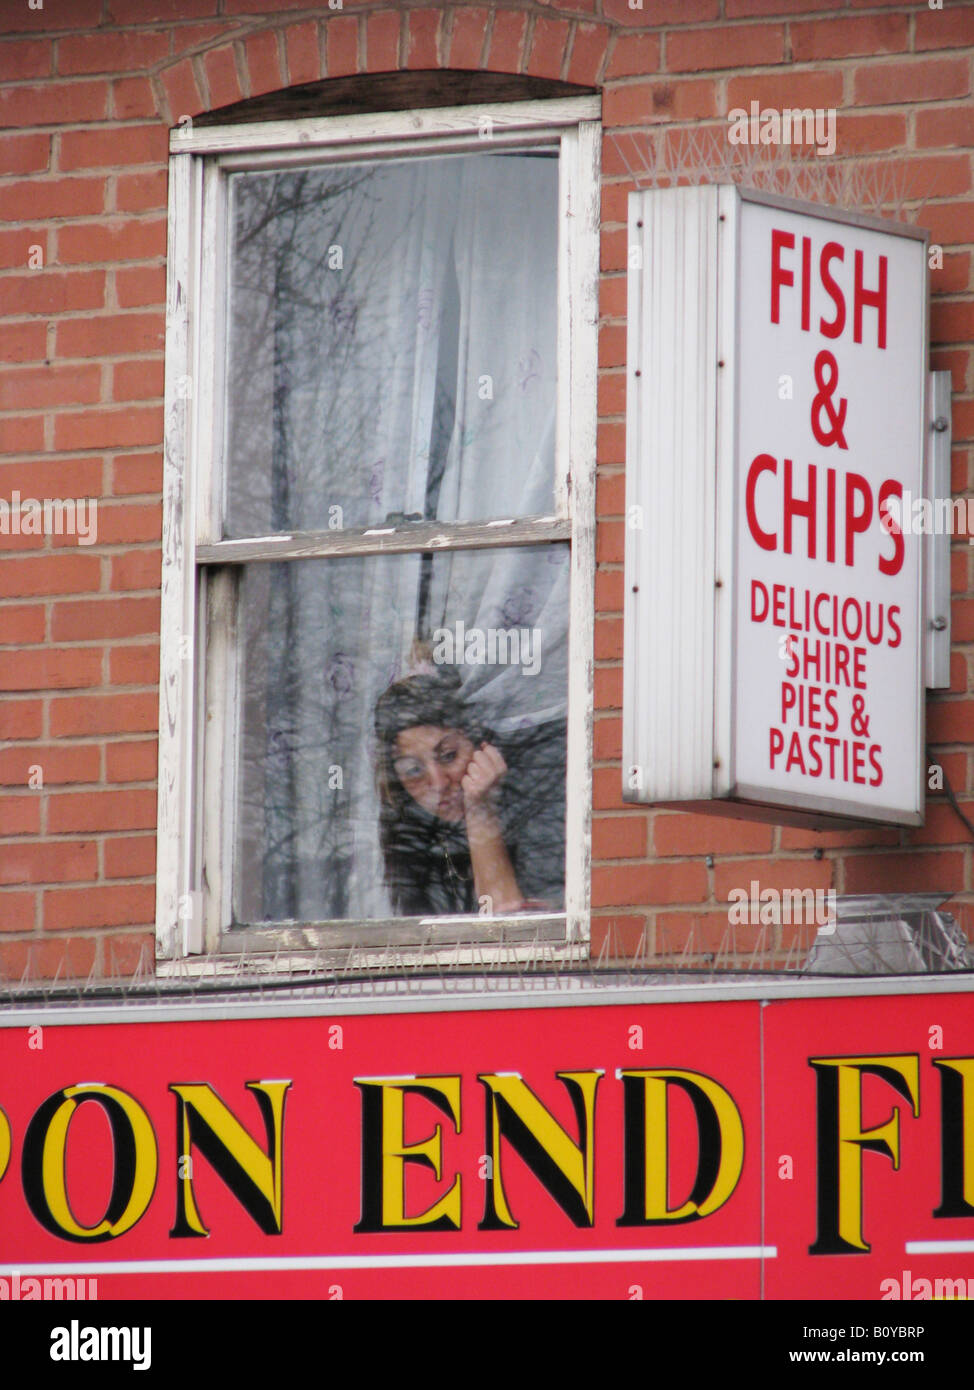 Woman Looking Out Of Window Above An Englisch Snack Bar Fish And